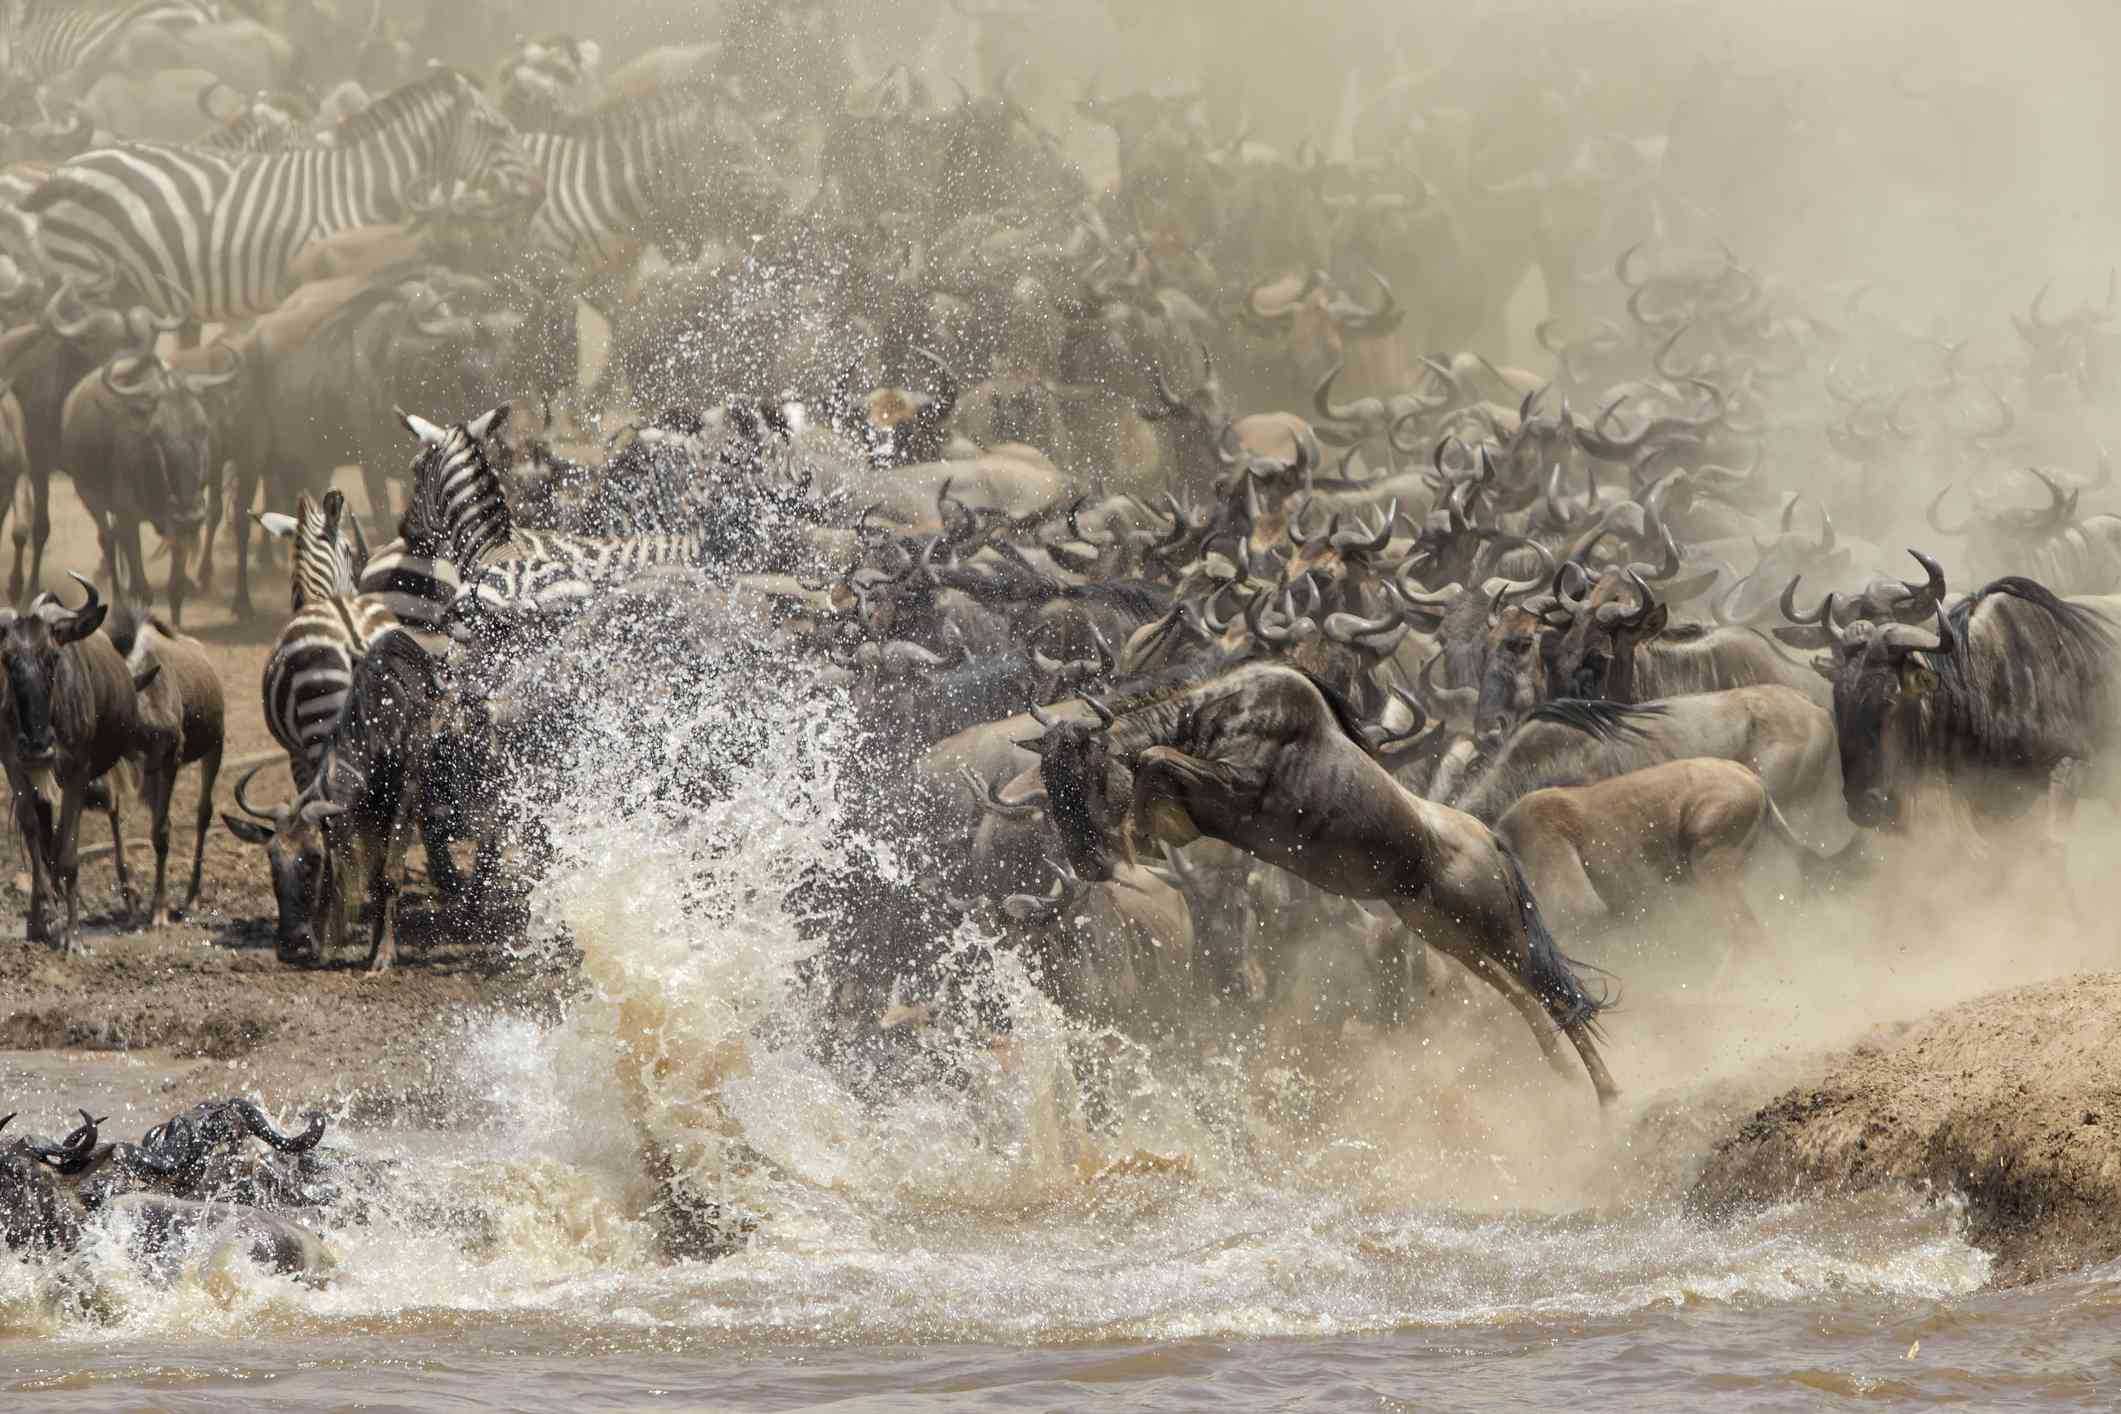 Wildebeest and zebra crossing a river during the Great Migration